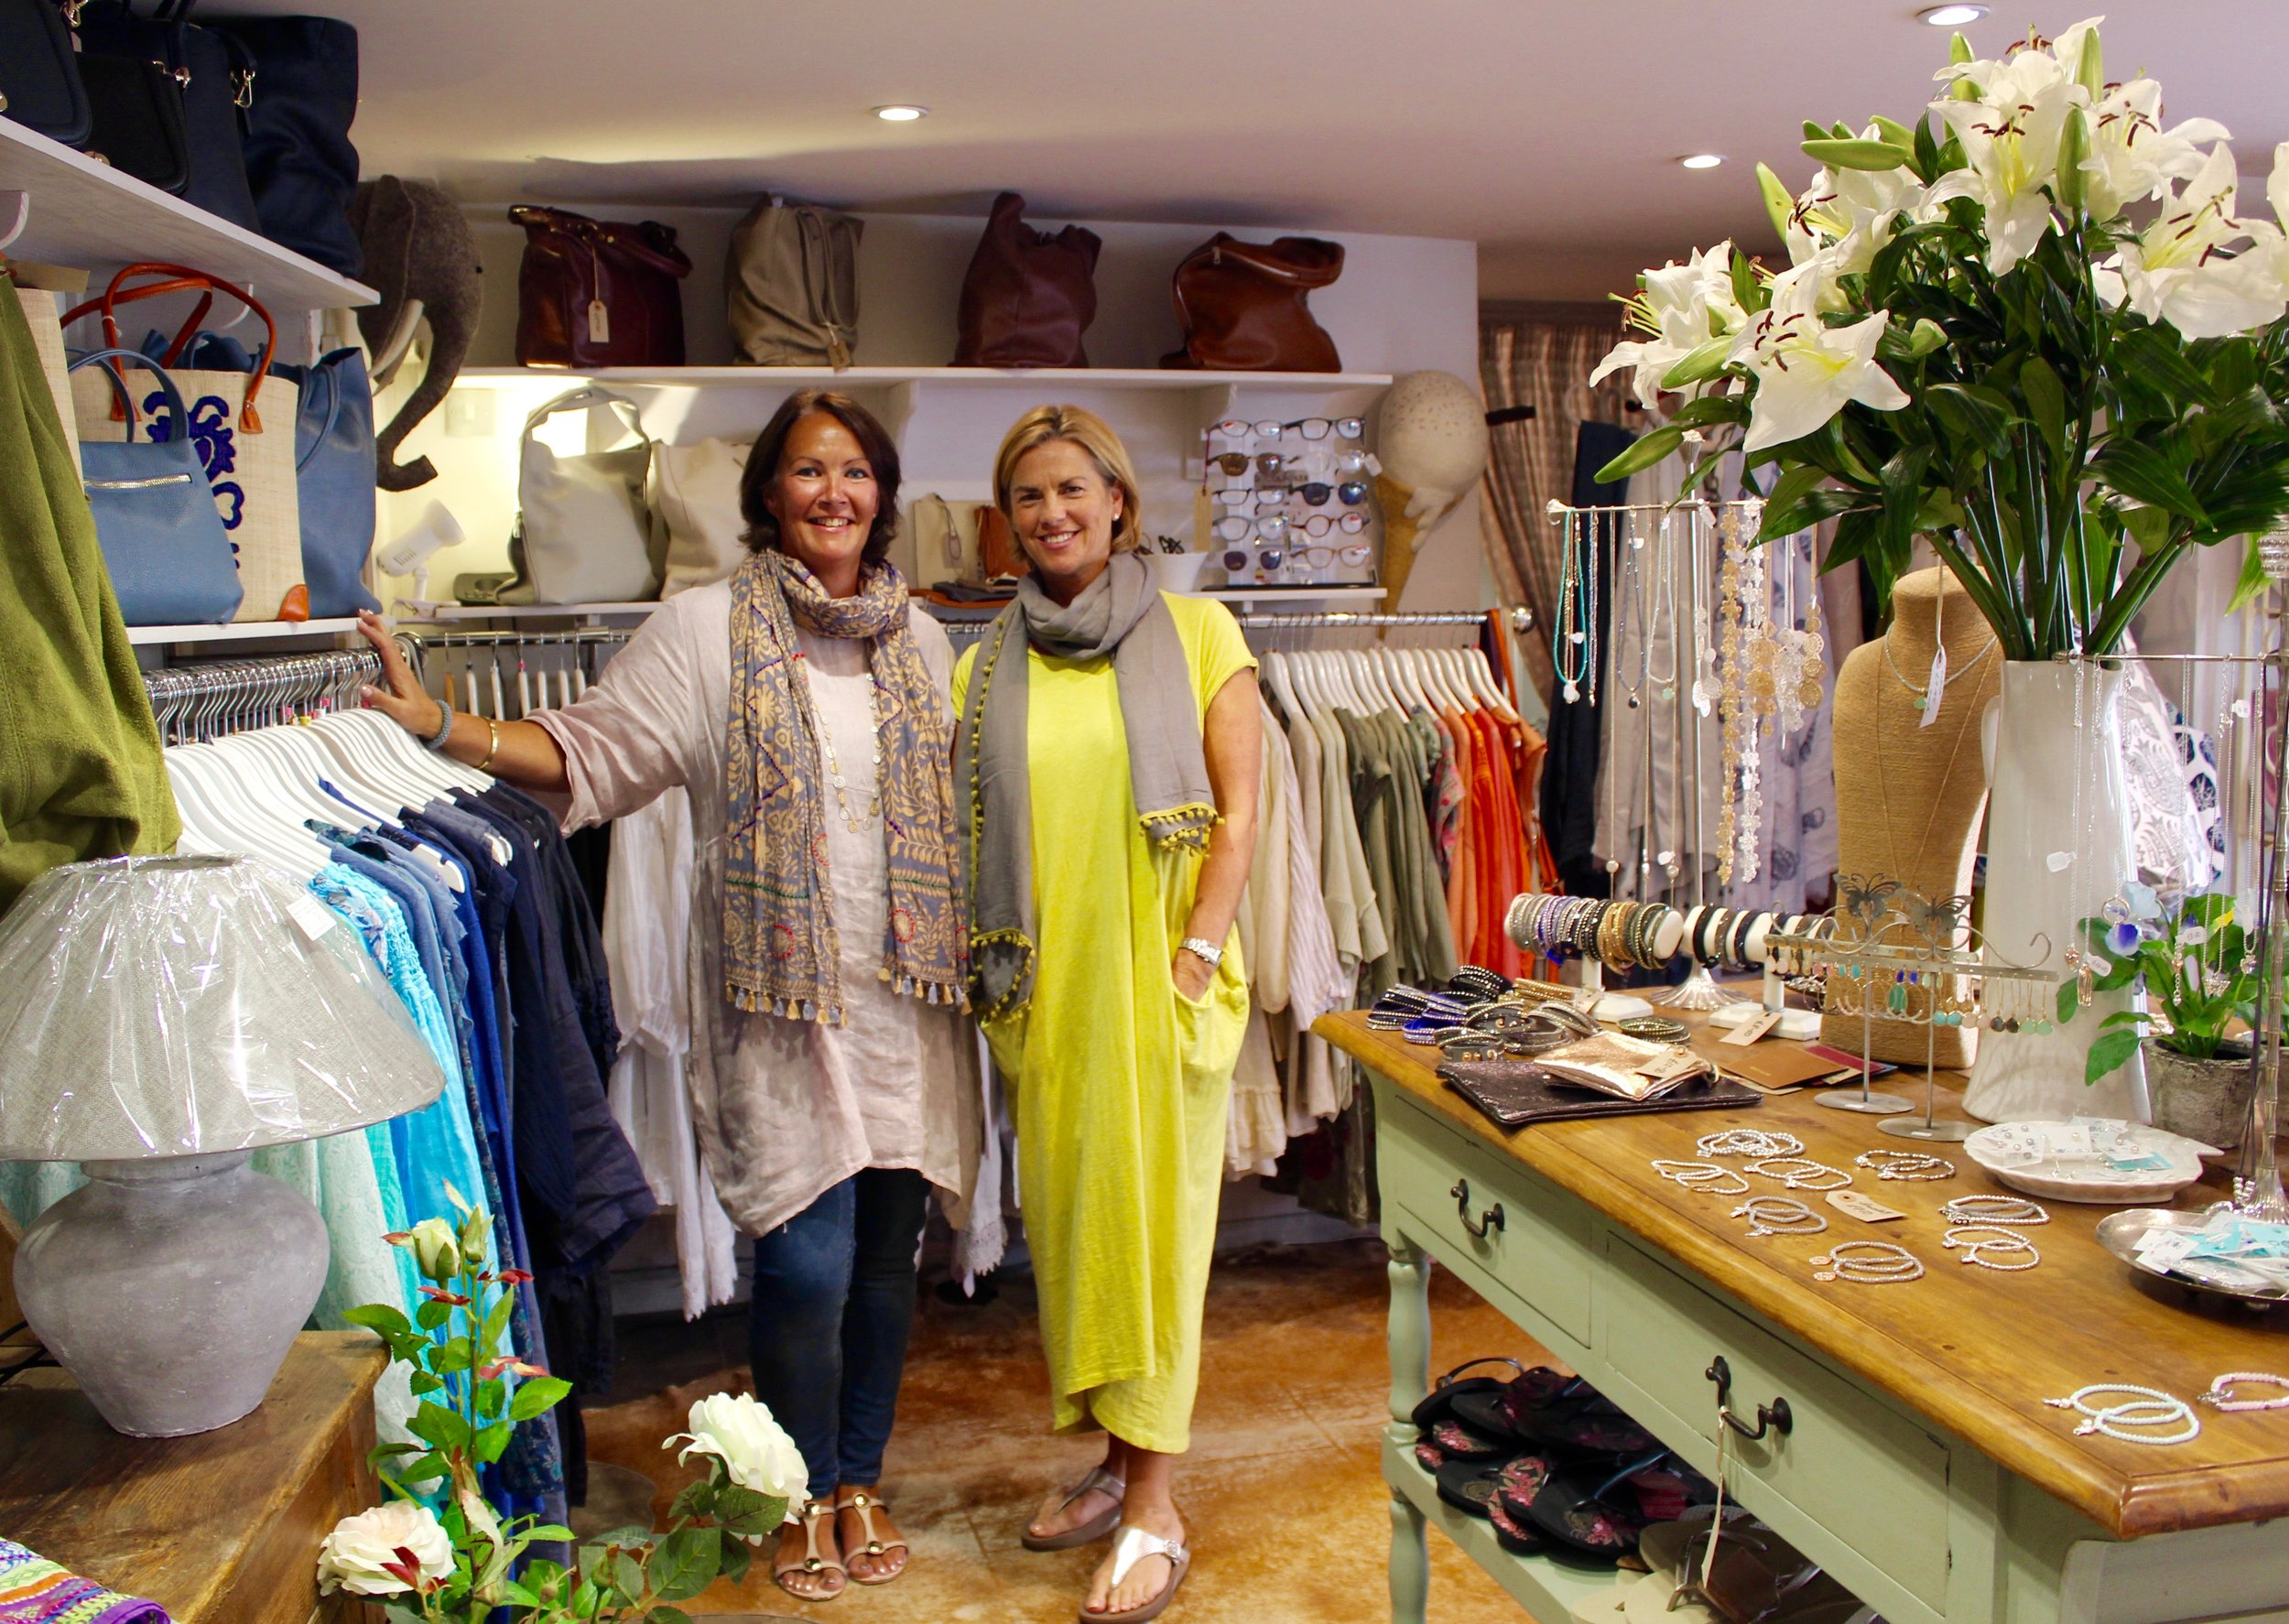 RUBY TYGER - Ruby Tyger is a thriving lifestyle shop set up five years ago by Susie and Sarah. It has grown organically and developed a loyal following. Old and new customers always receive a warm welcome, leaving them free to browse the Italian clothing, Havaianas, Victoria shoes, jewellery, handbags together with a variety of interior accessories.